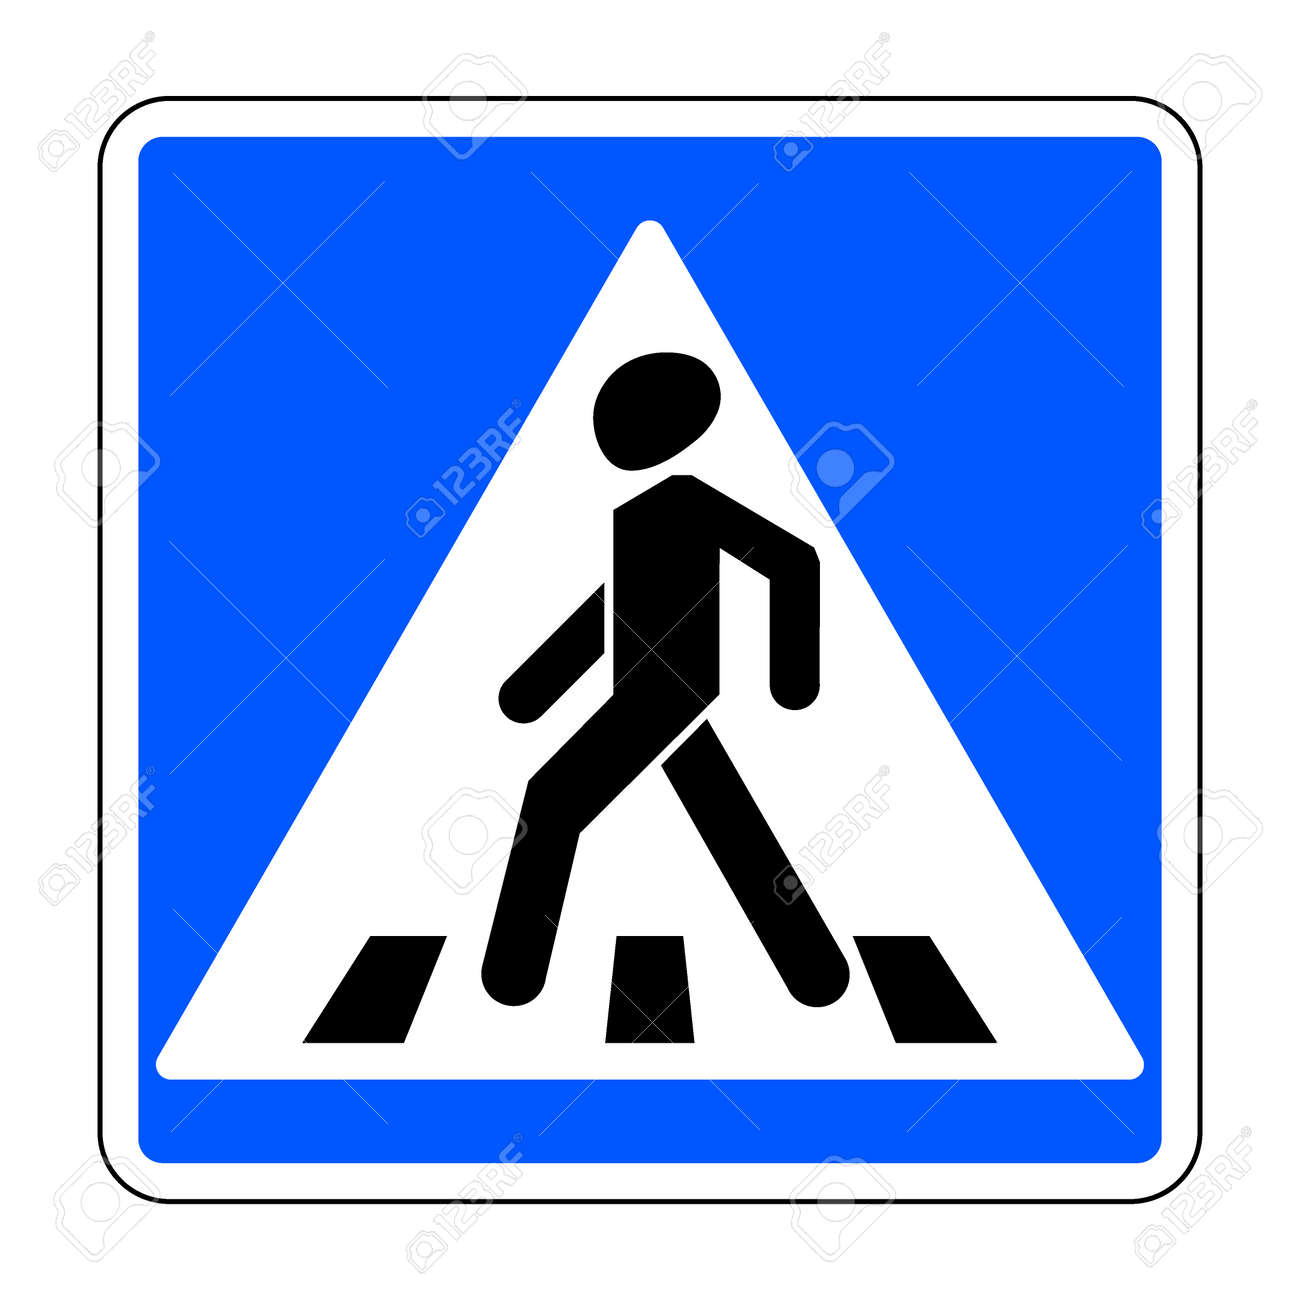 49855536-pedestrian-crossing-sign-traffic-sign-zebra-crossing-illustration--Stock-Photo.jpg